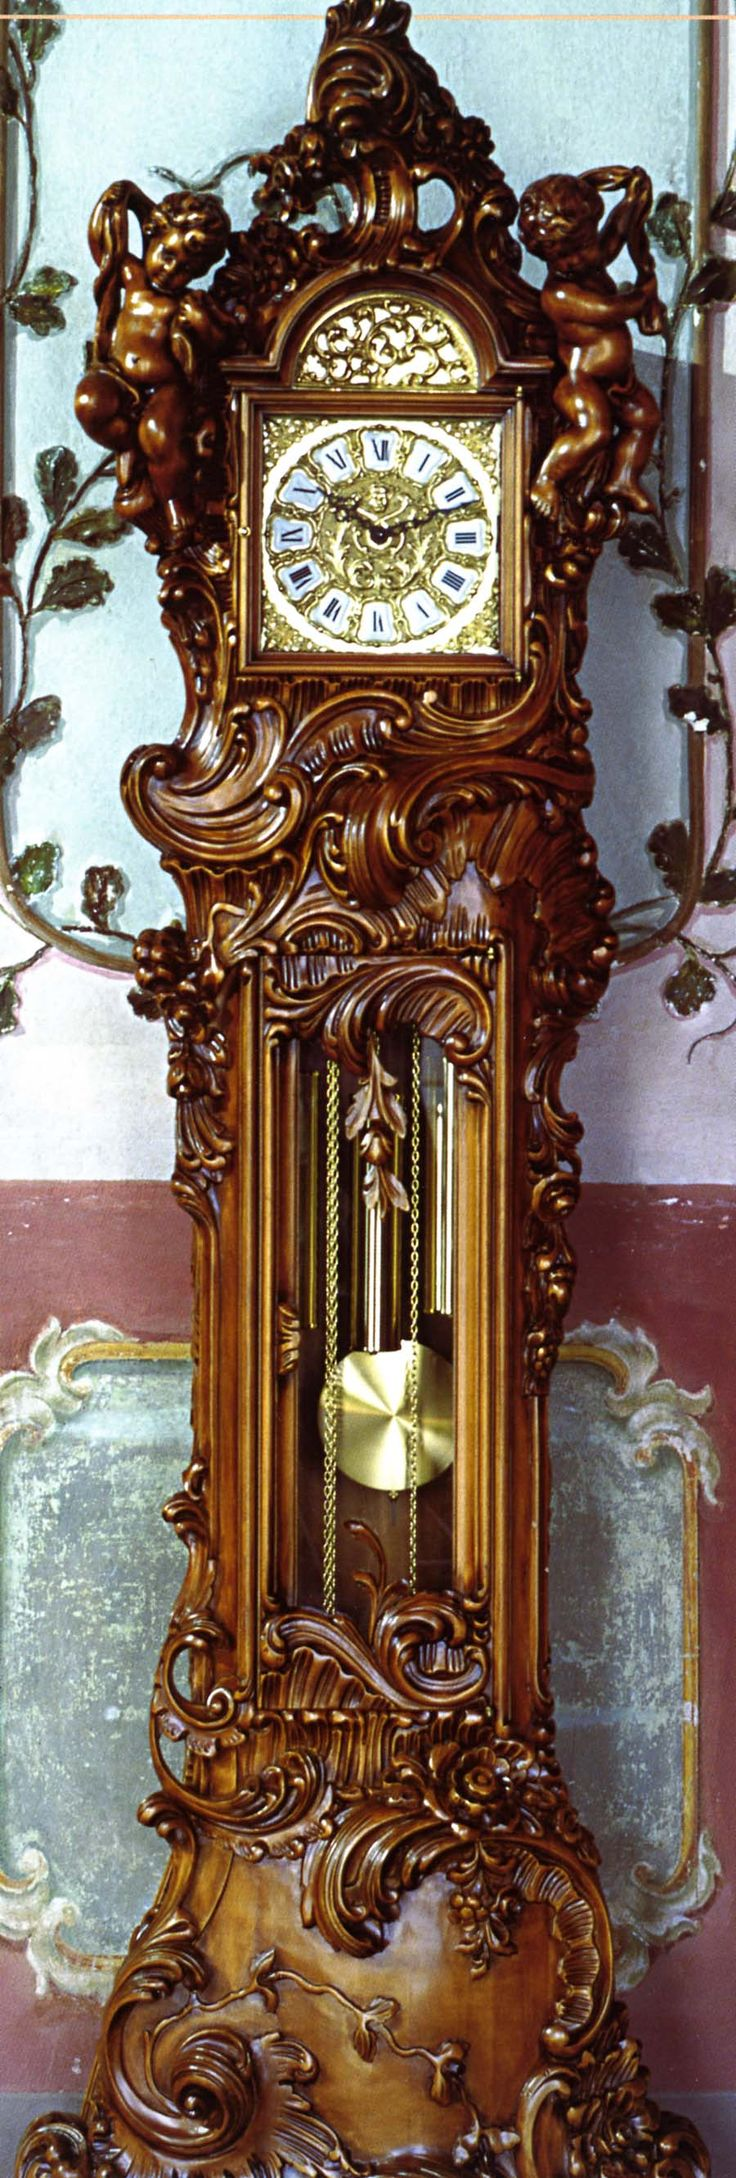 Ornately carved Le Ore grandfather clock. (Italian)